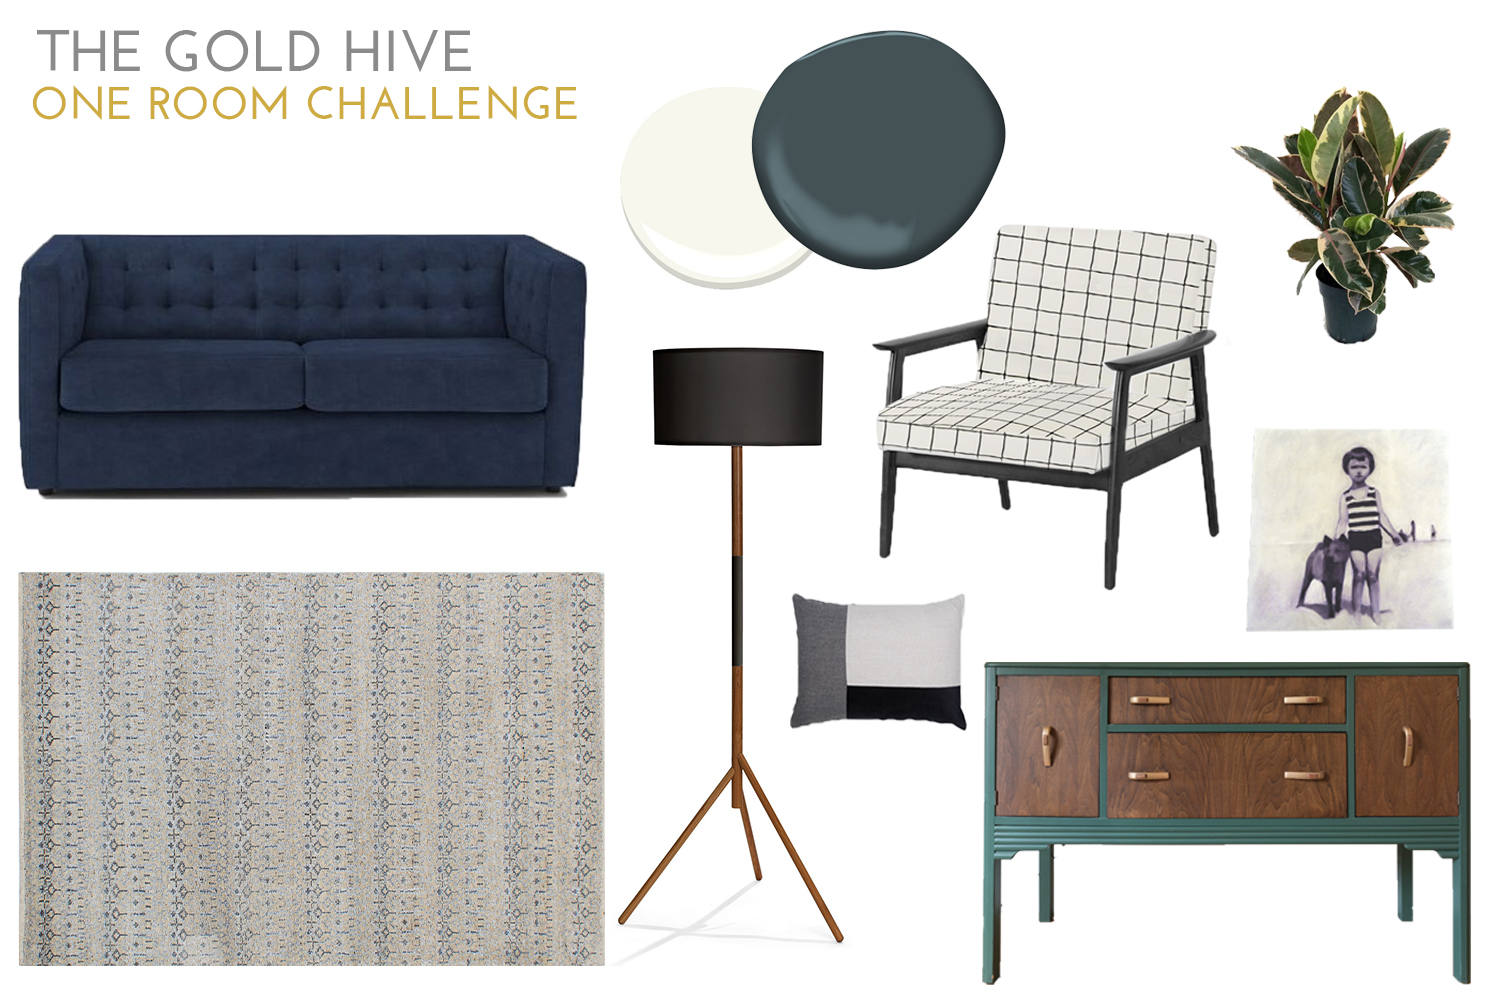 One Room Challenge Mood Board - The Gold Hive